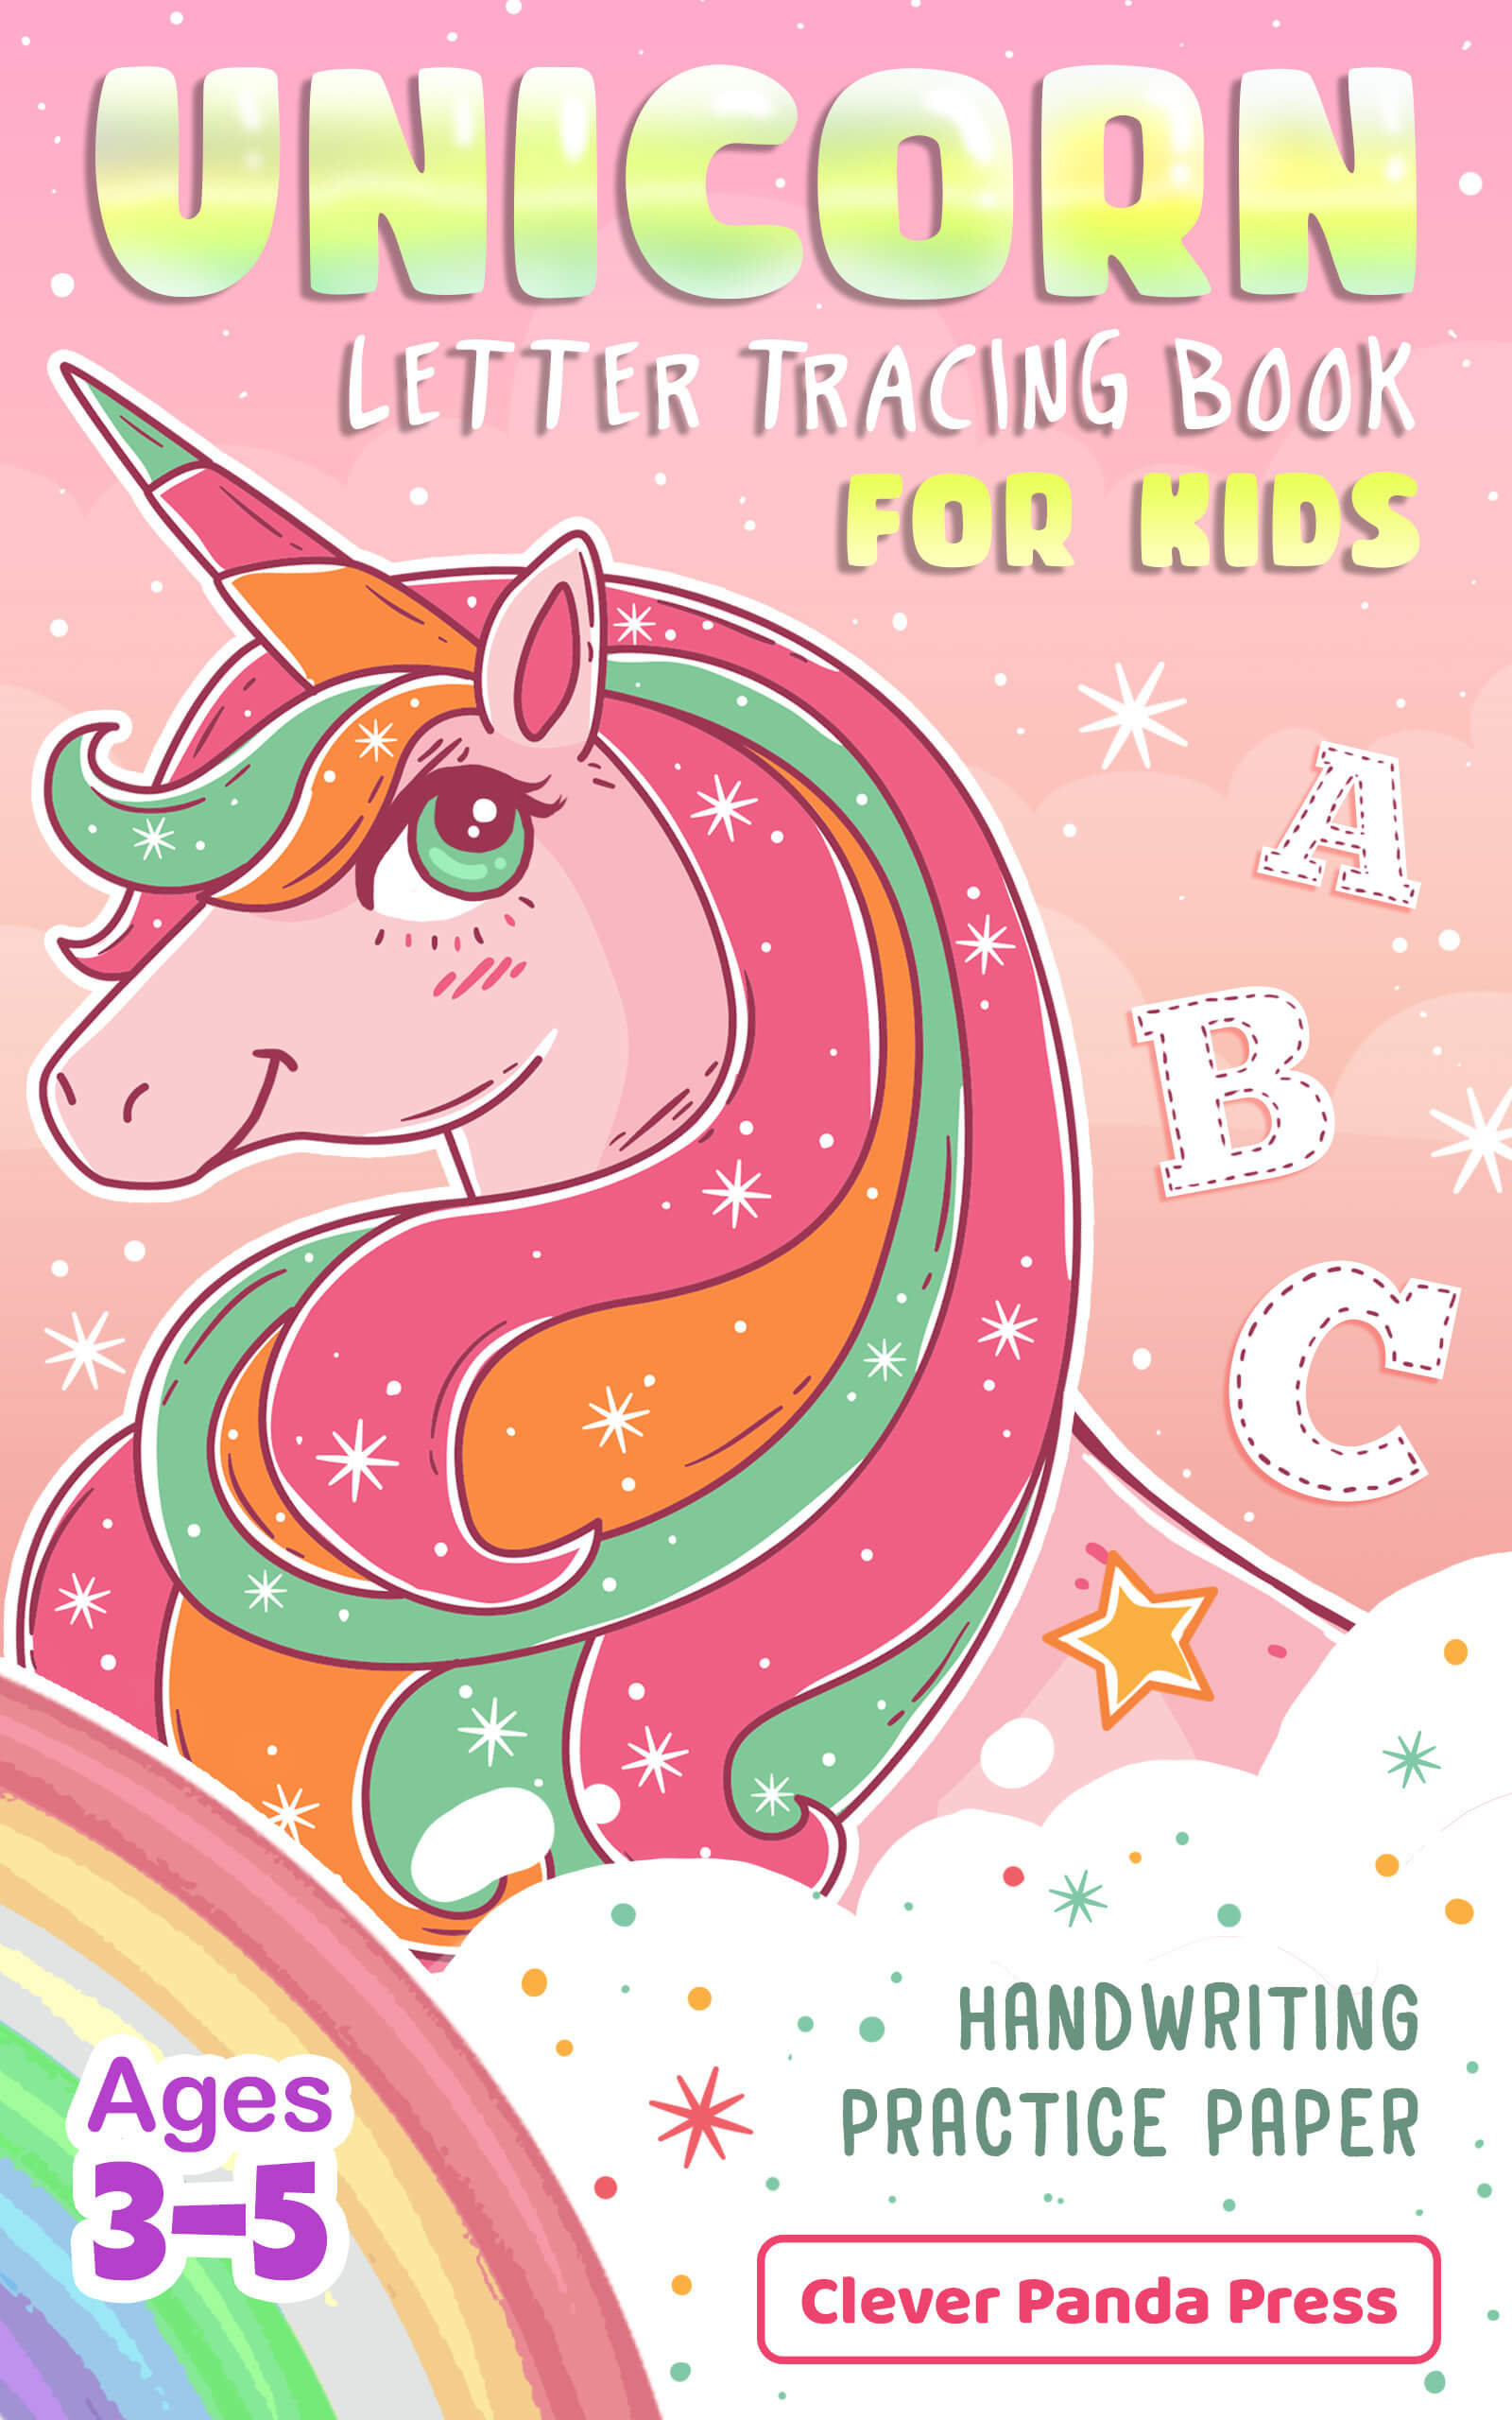 Unicorn Letter Tracing for Kids_Rev1 SMALL